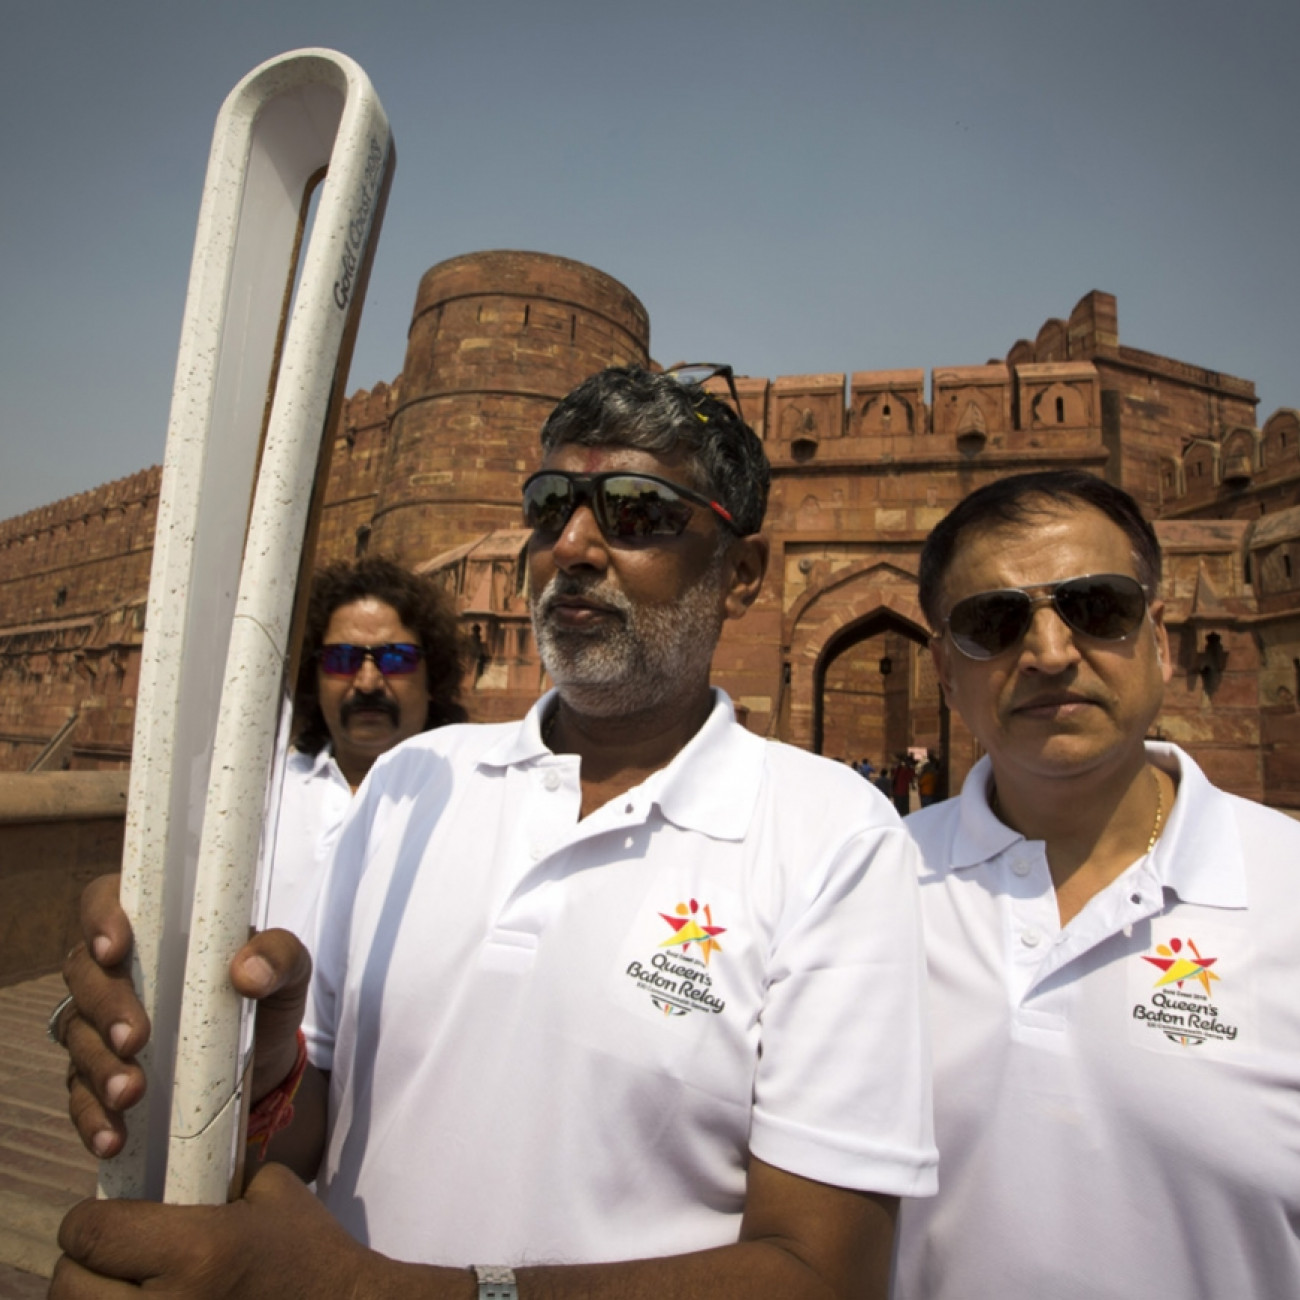 The Baton with Anandewhar Pandey (centre), secretary of the Uttar Pradesh Olympic Association, at Agra Fort